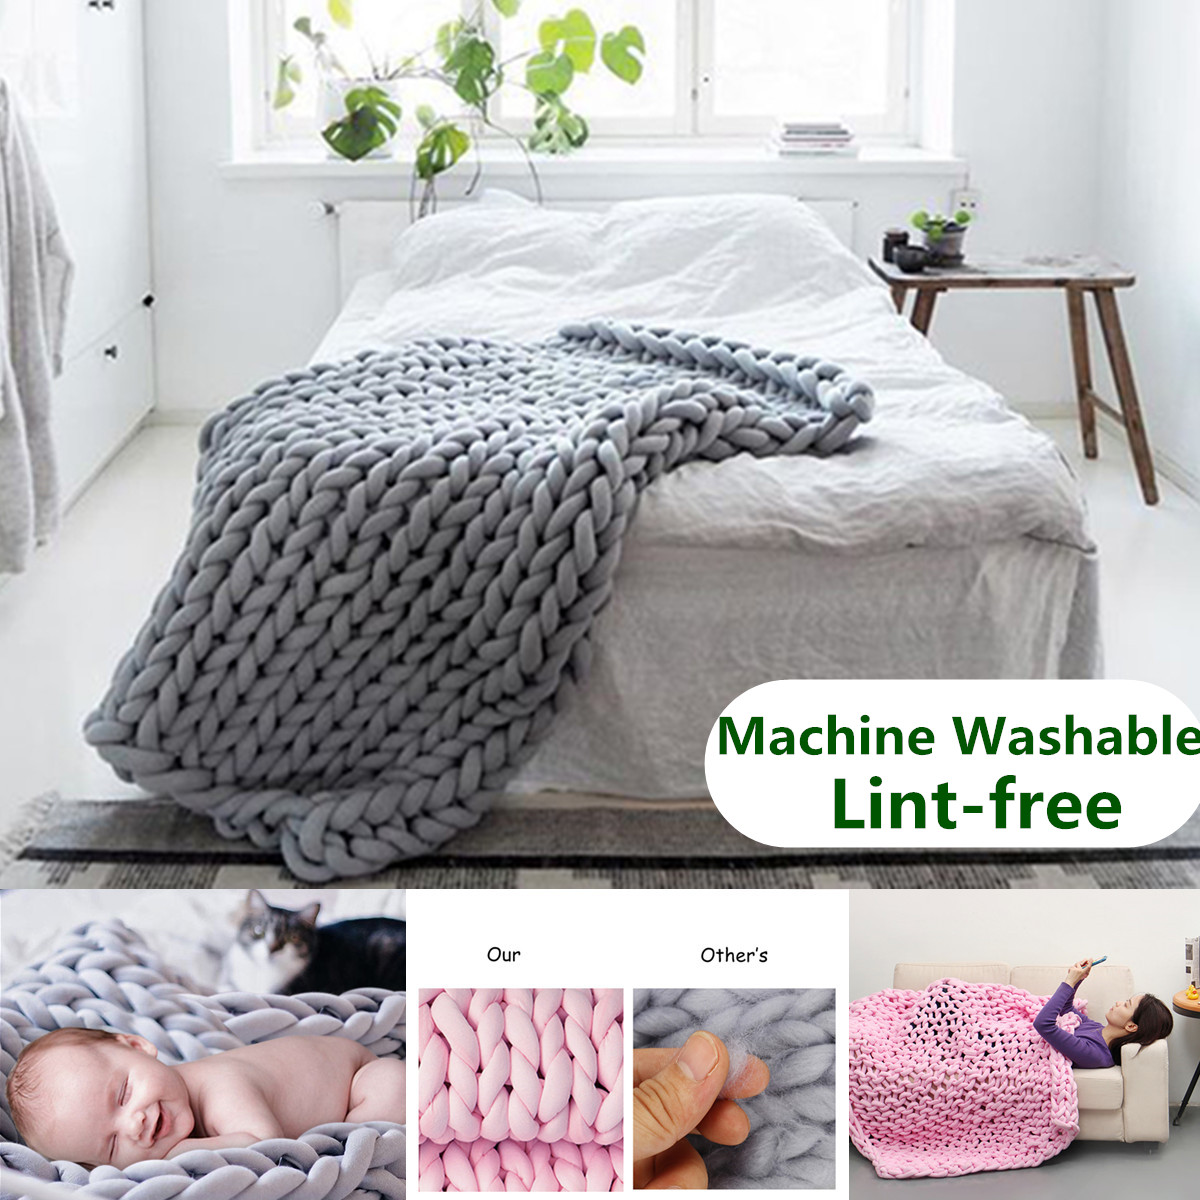 Chunky Hand-woven Knitted Cotton Blanket Thick Bulky Bed Sofa Throw Rug - Machine Washable and Lint-free